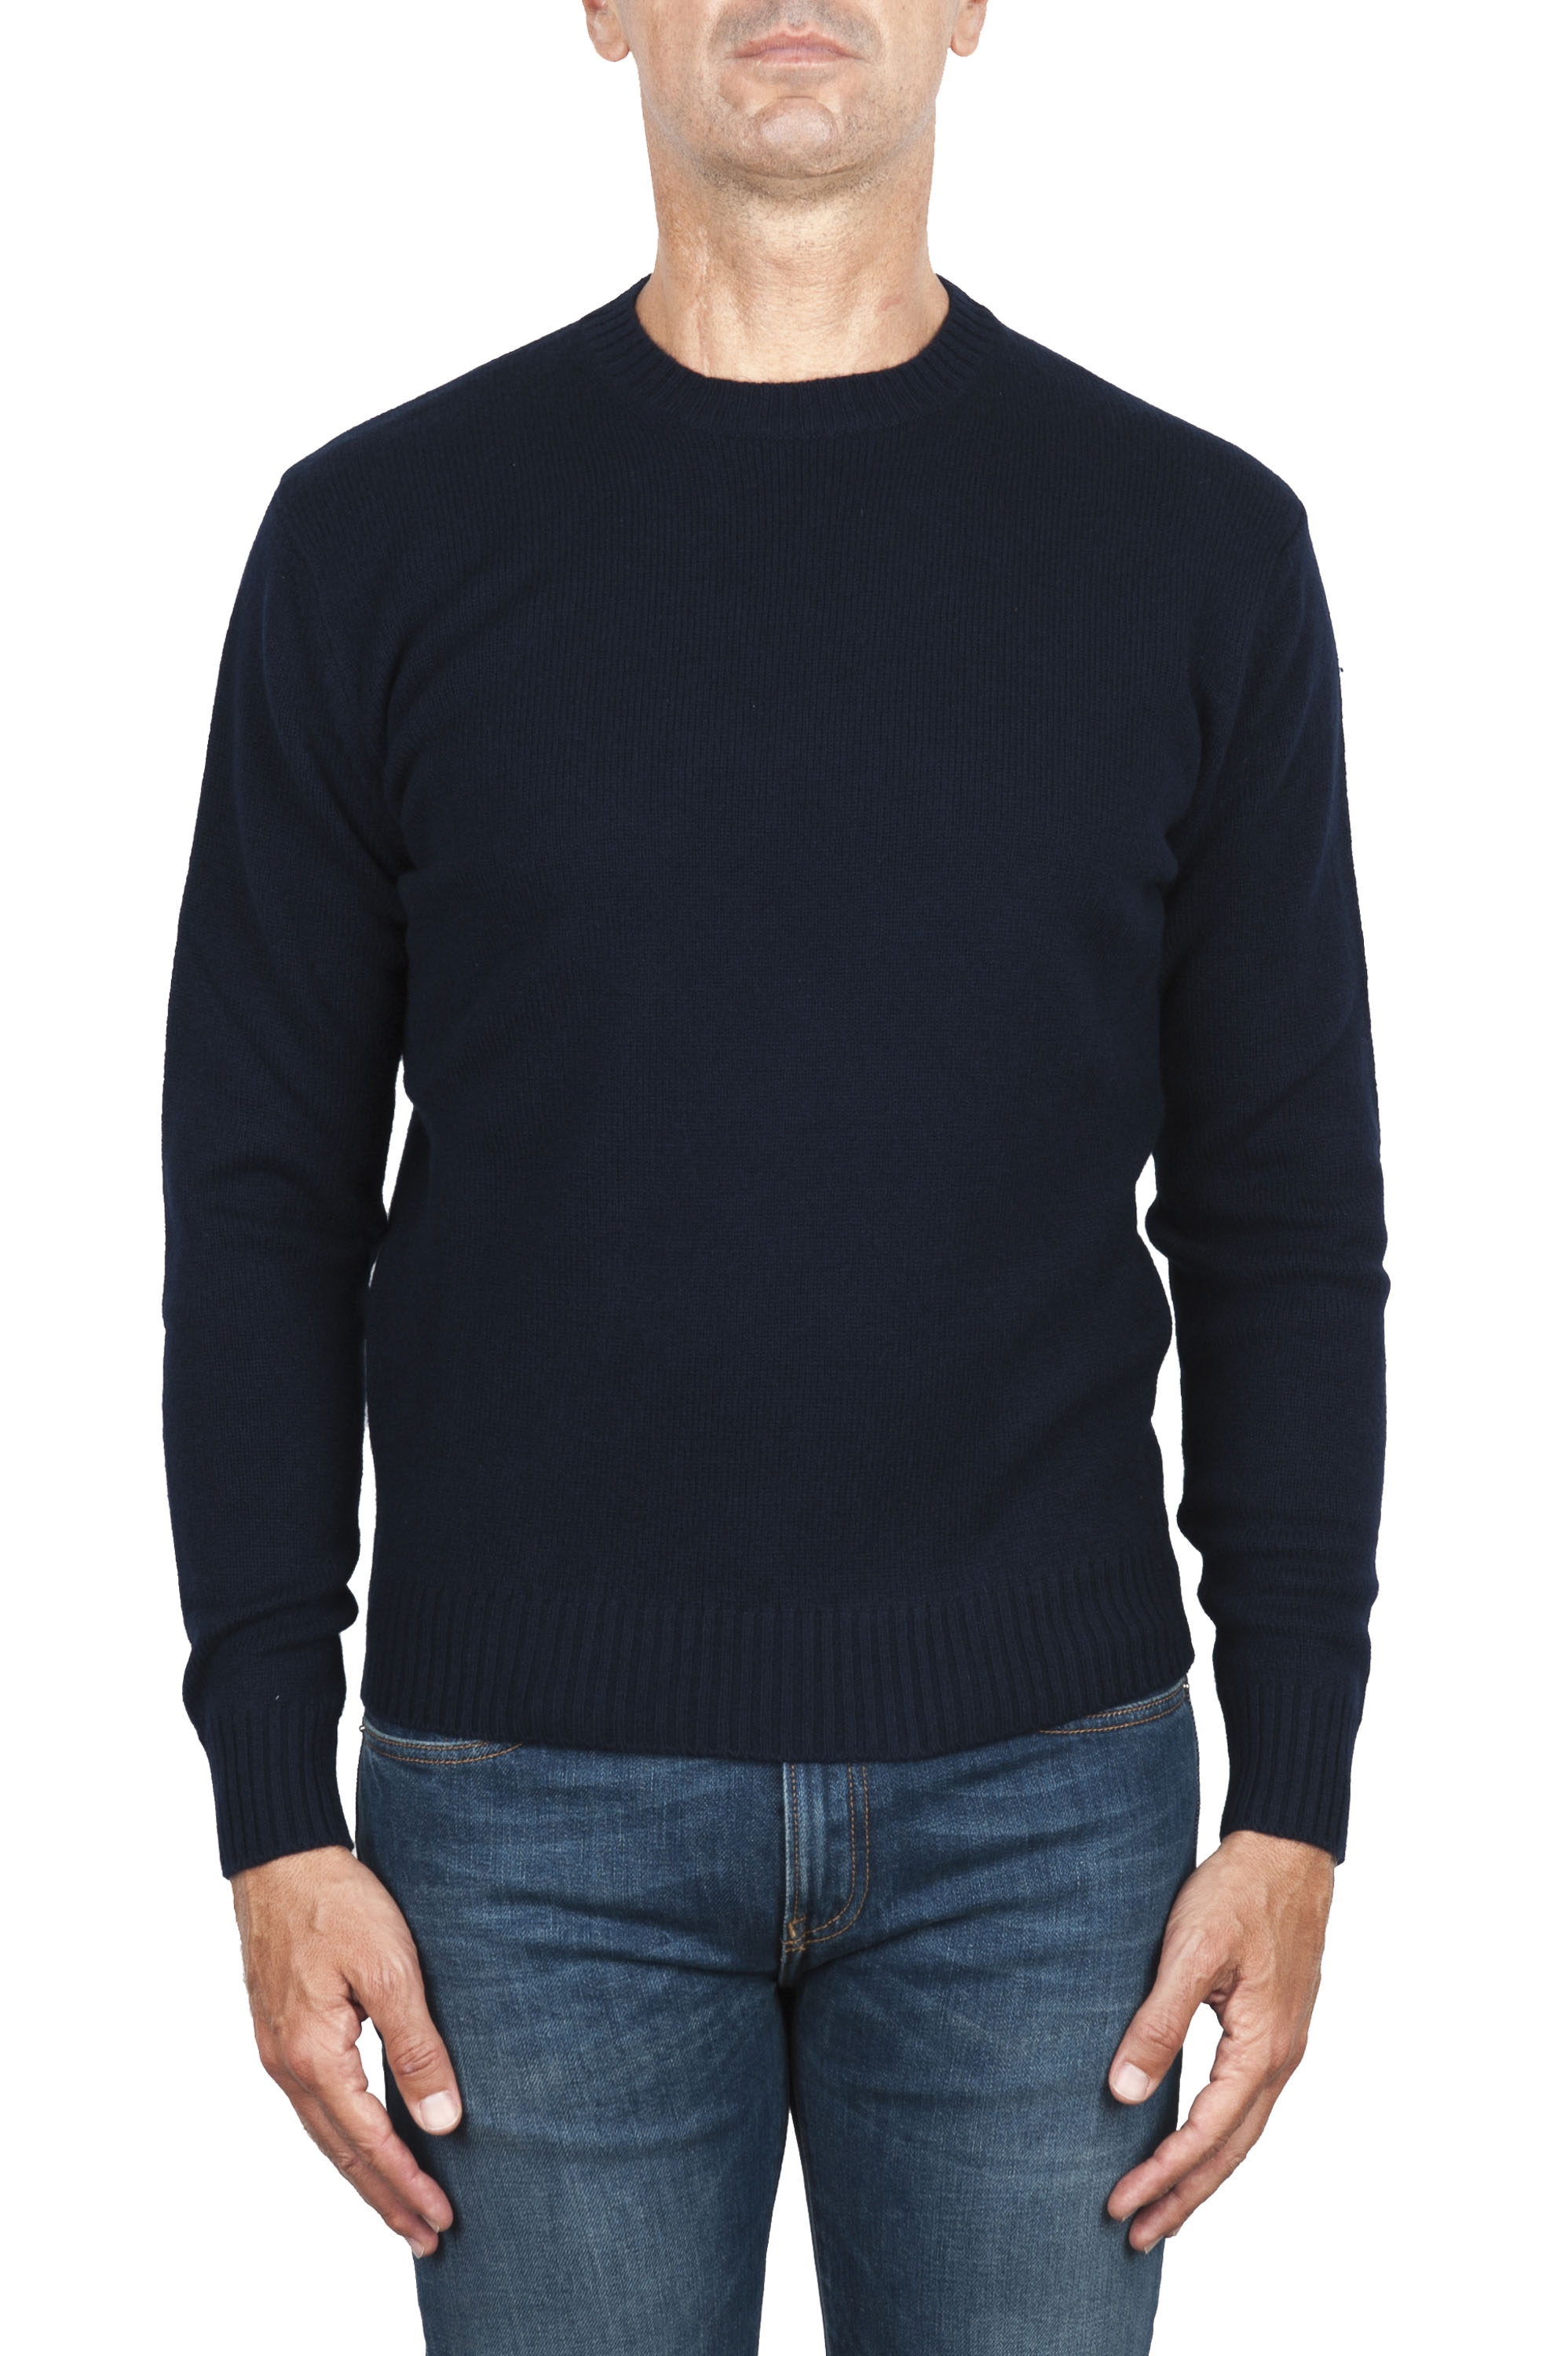 SBU 02998_2020AW Navy blue wool and cashmere blend crew neck sweater 01